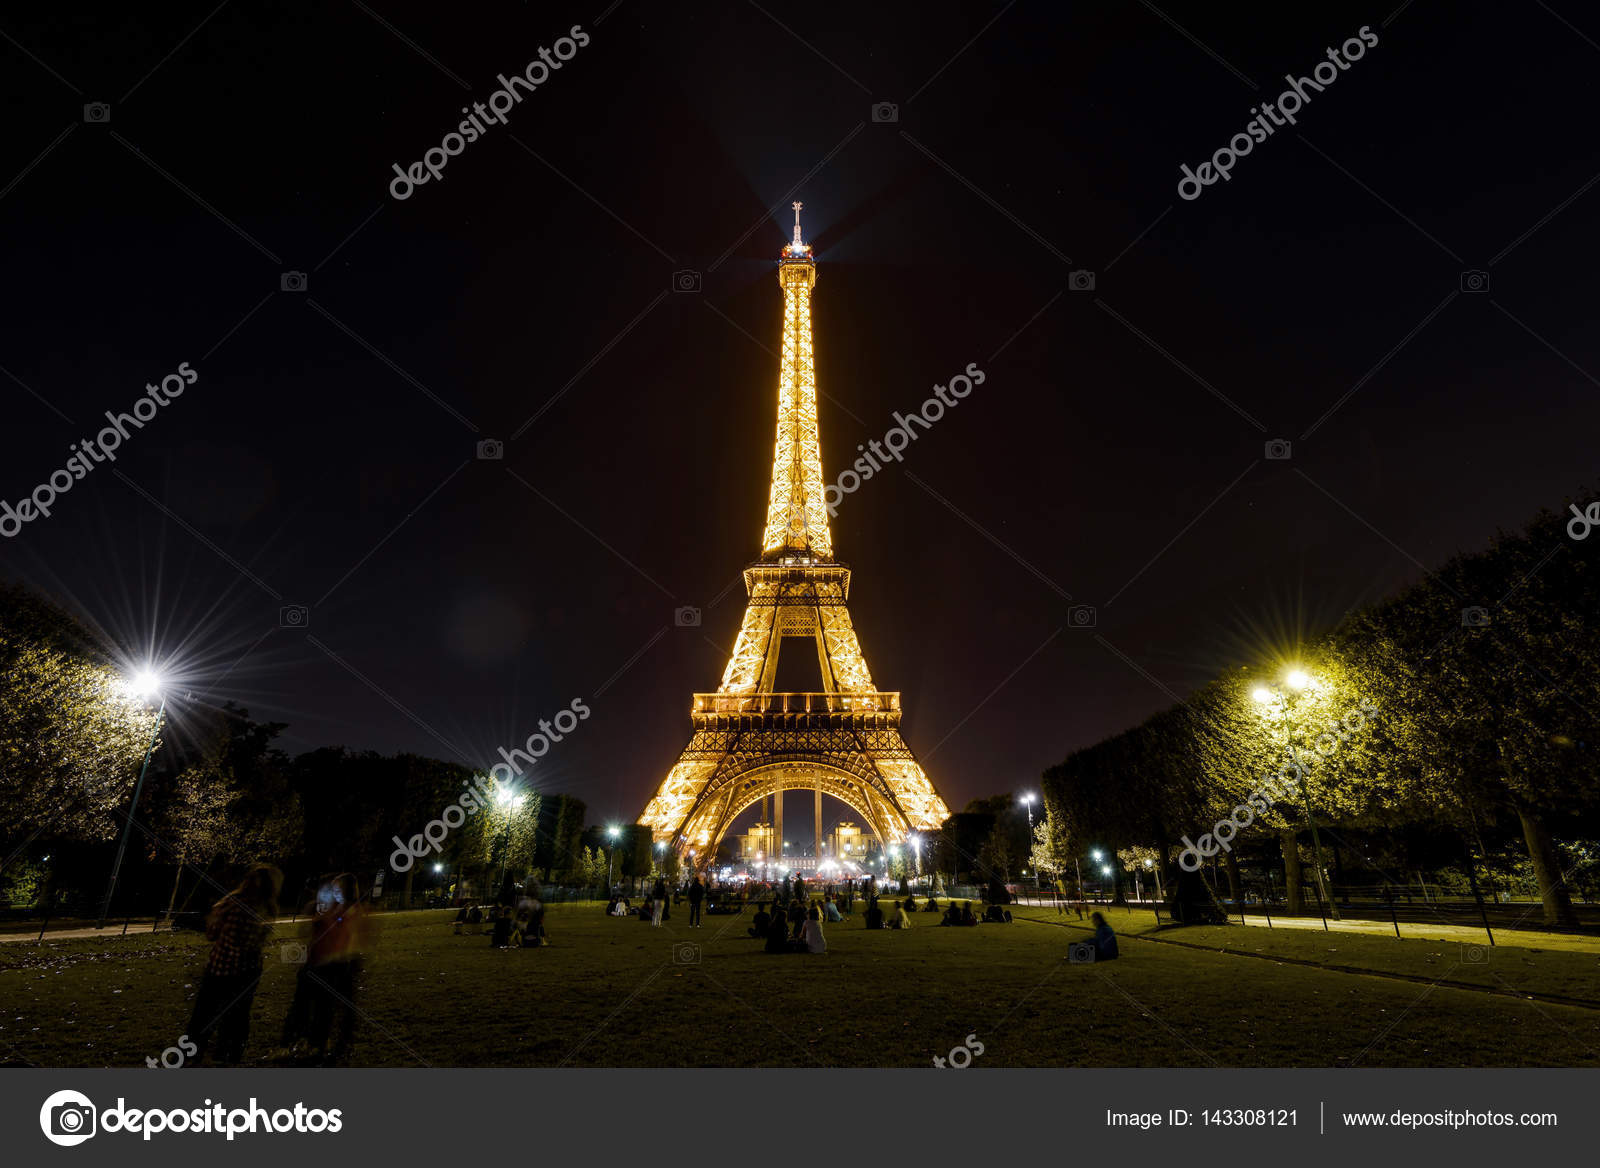 Paris September 24 2013 Lighting Of The Eiffel Tower At Night The Eiffel Tower Is One Of The Major Tourist Attractions Of France Photo By Scaliger